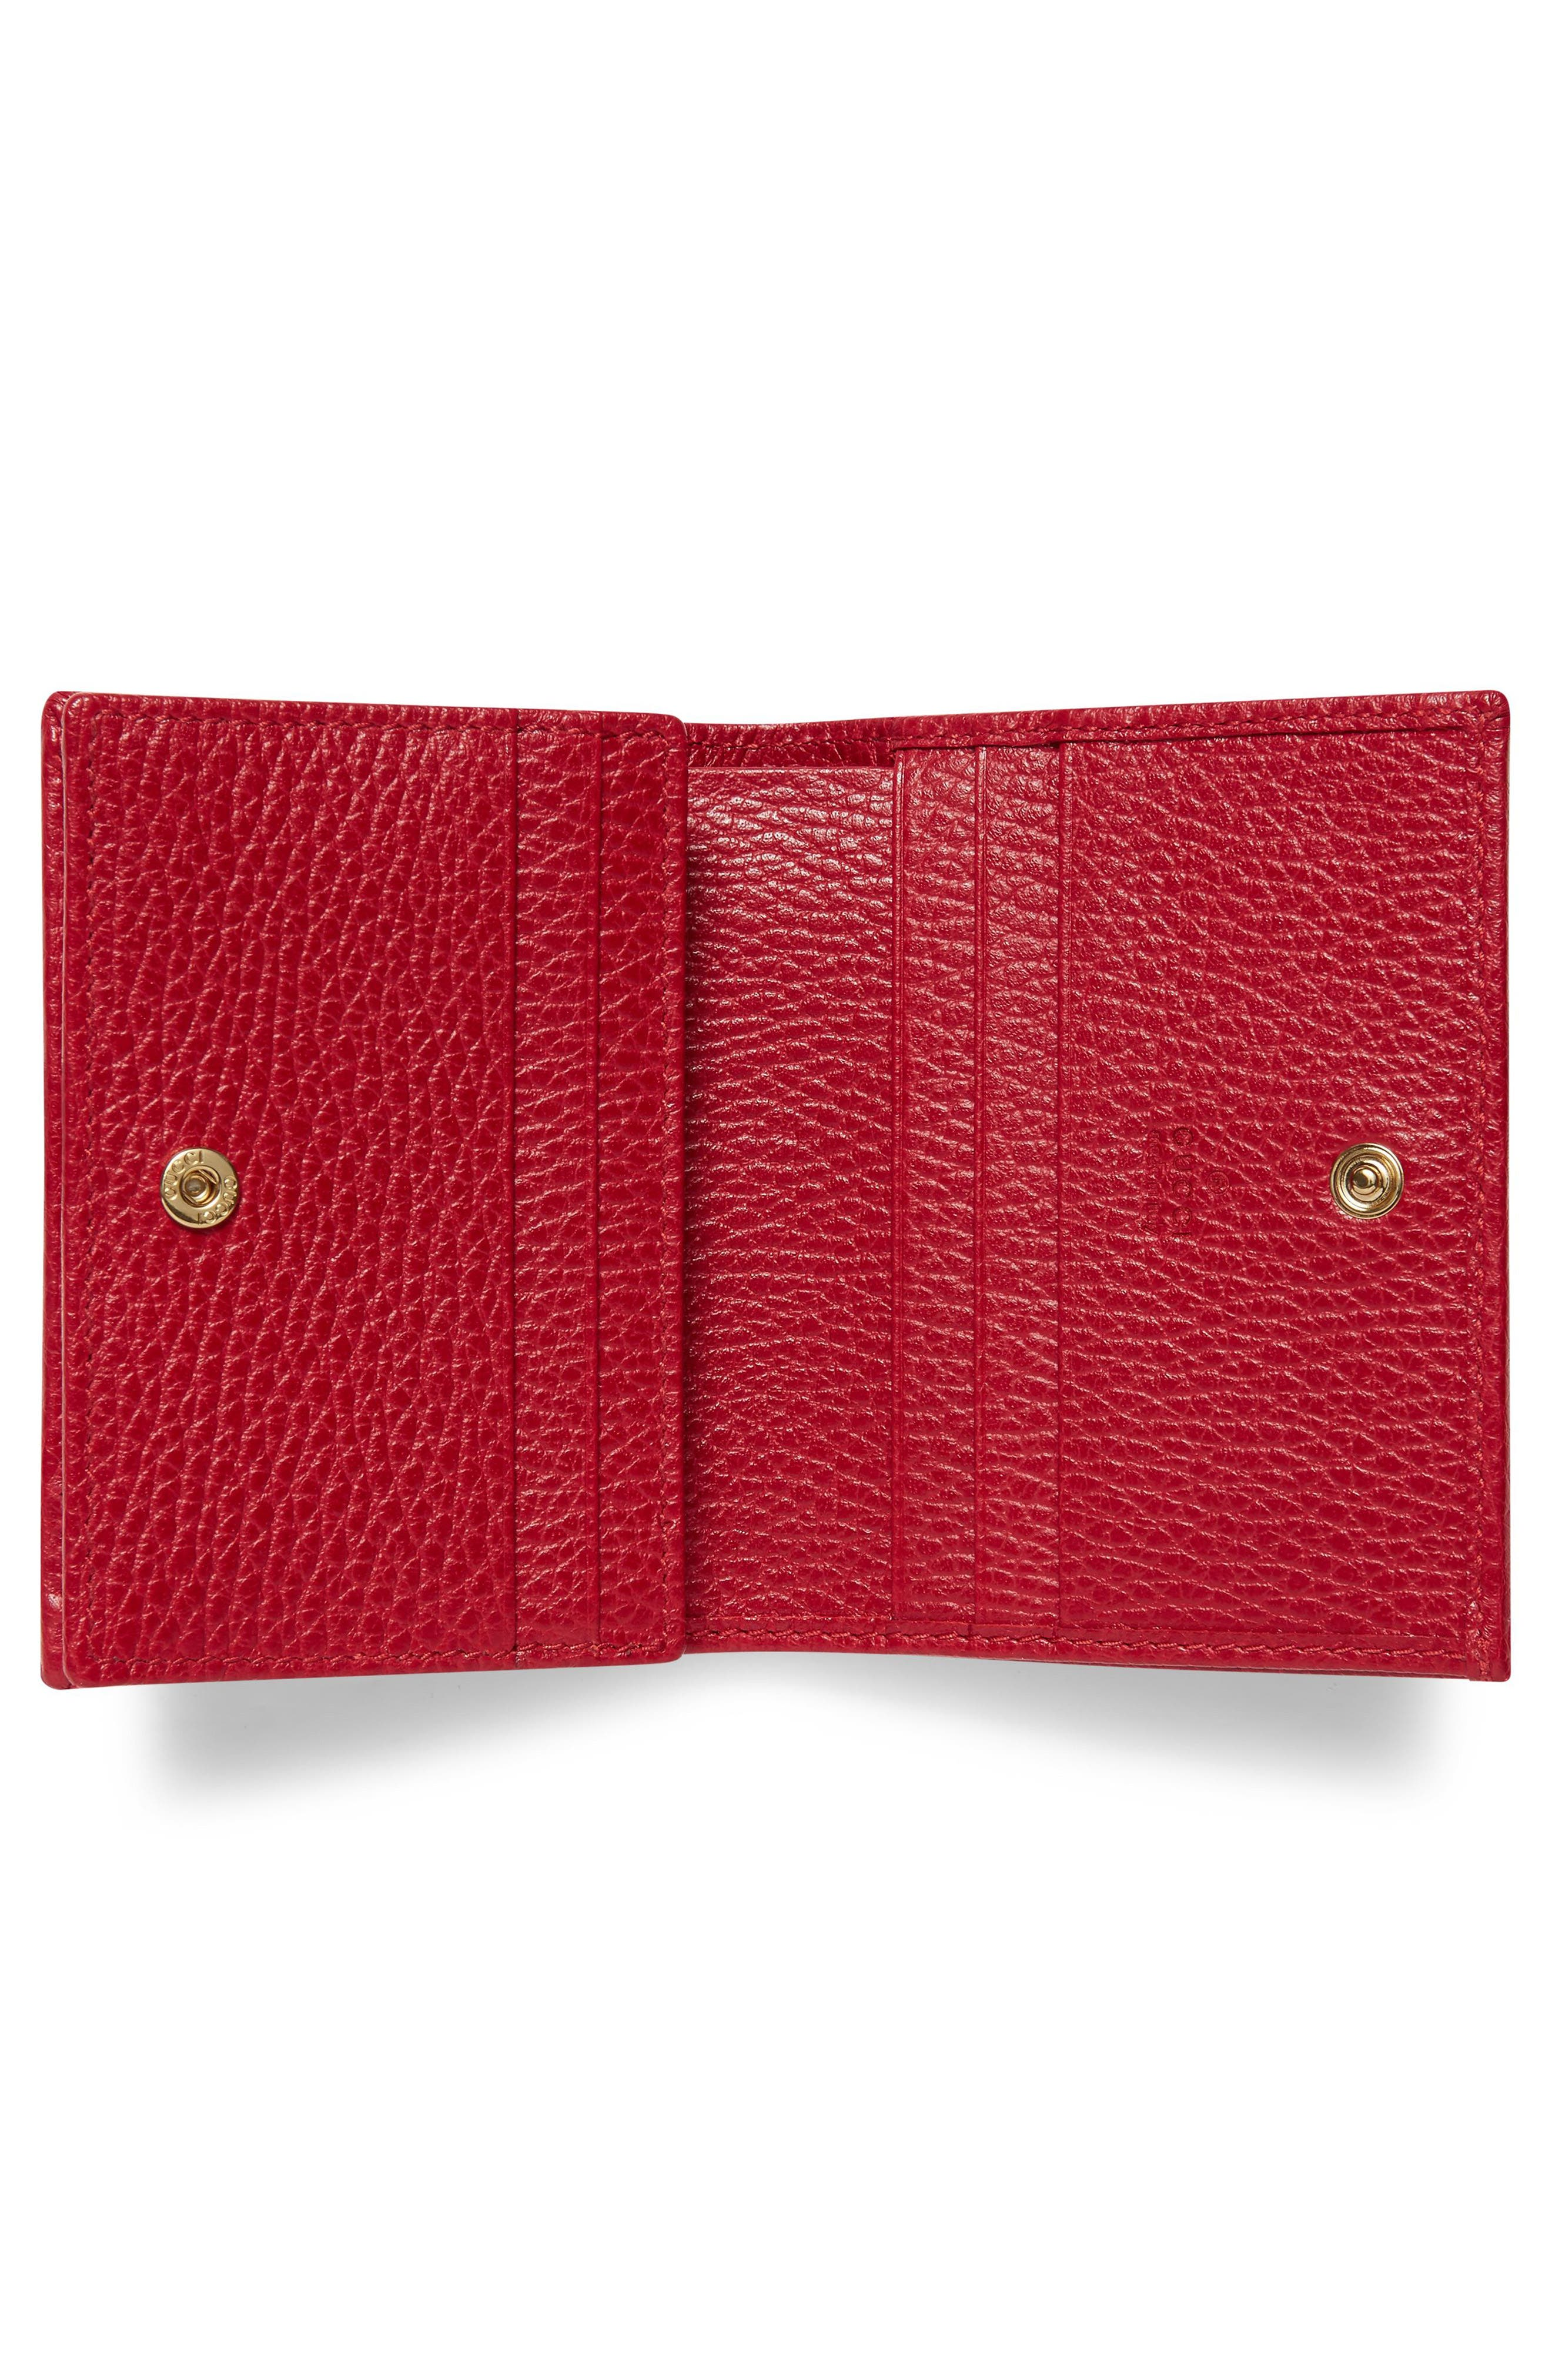 Petite Marmont Leather Card Case,                             Alternate thumbnail 2, color,                             Hibiscus Red